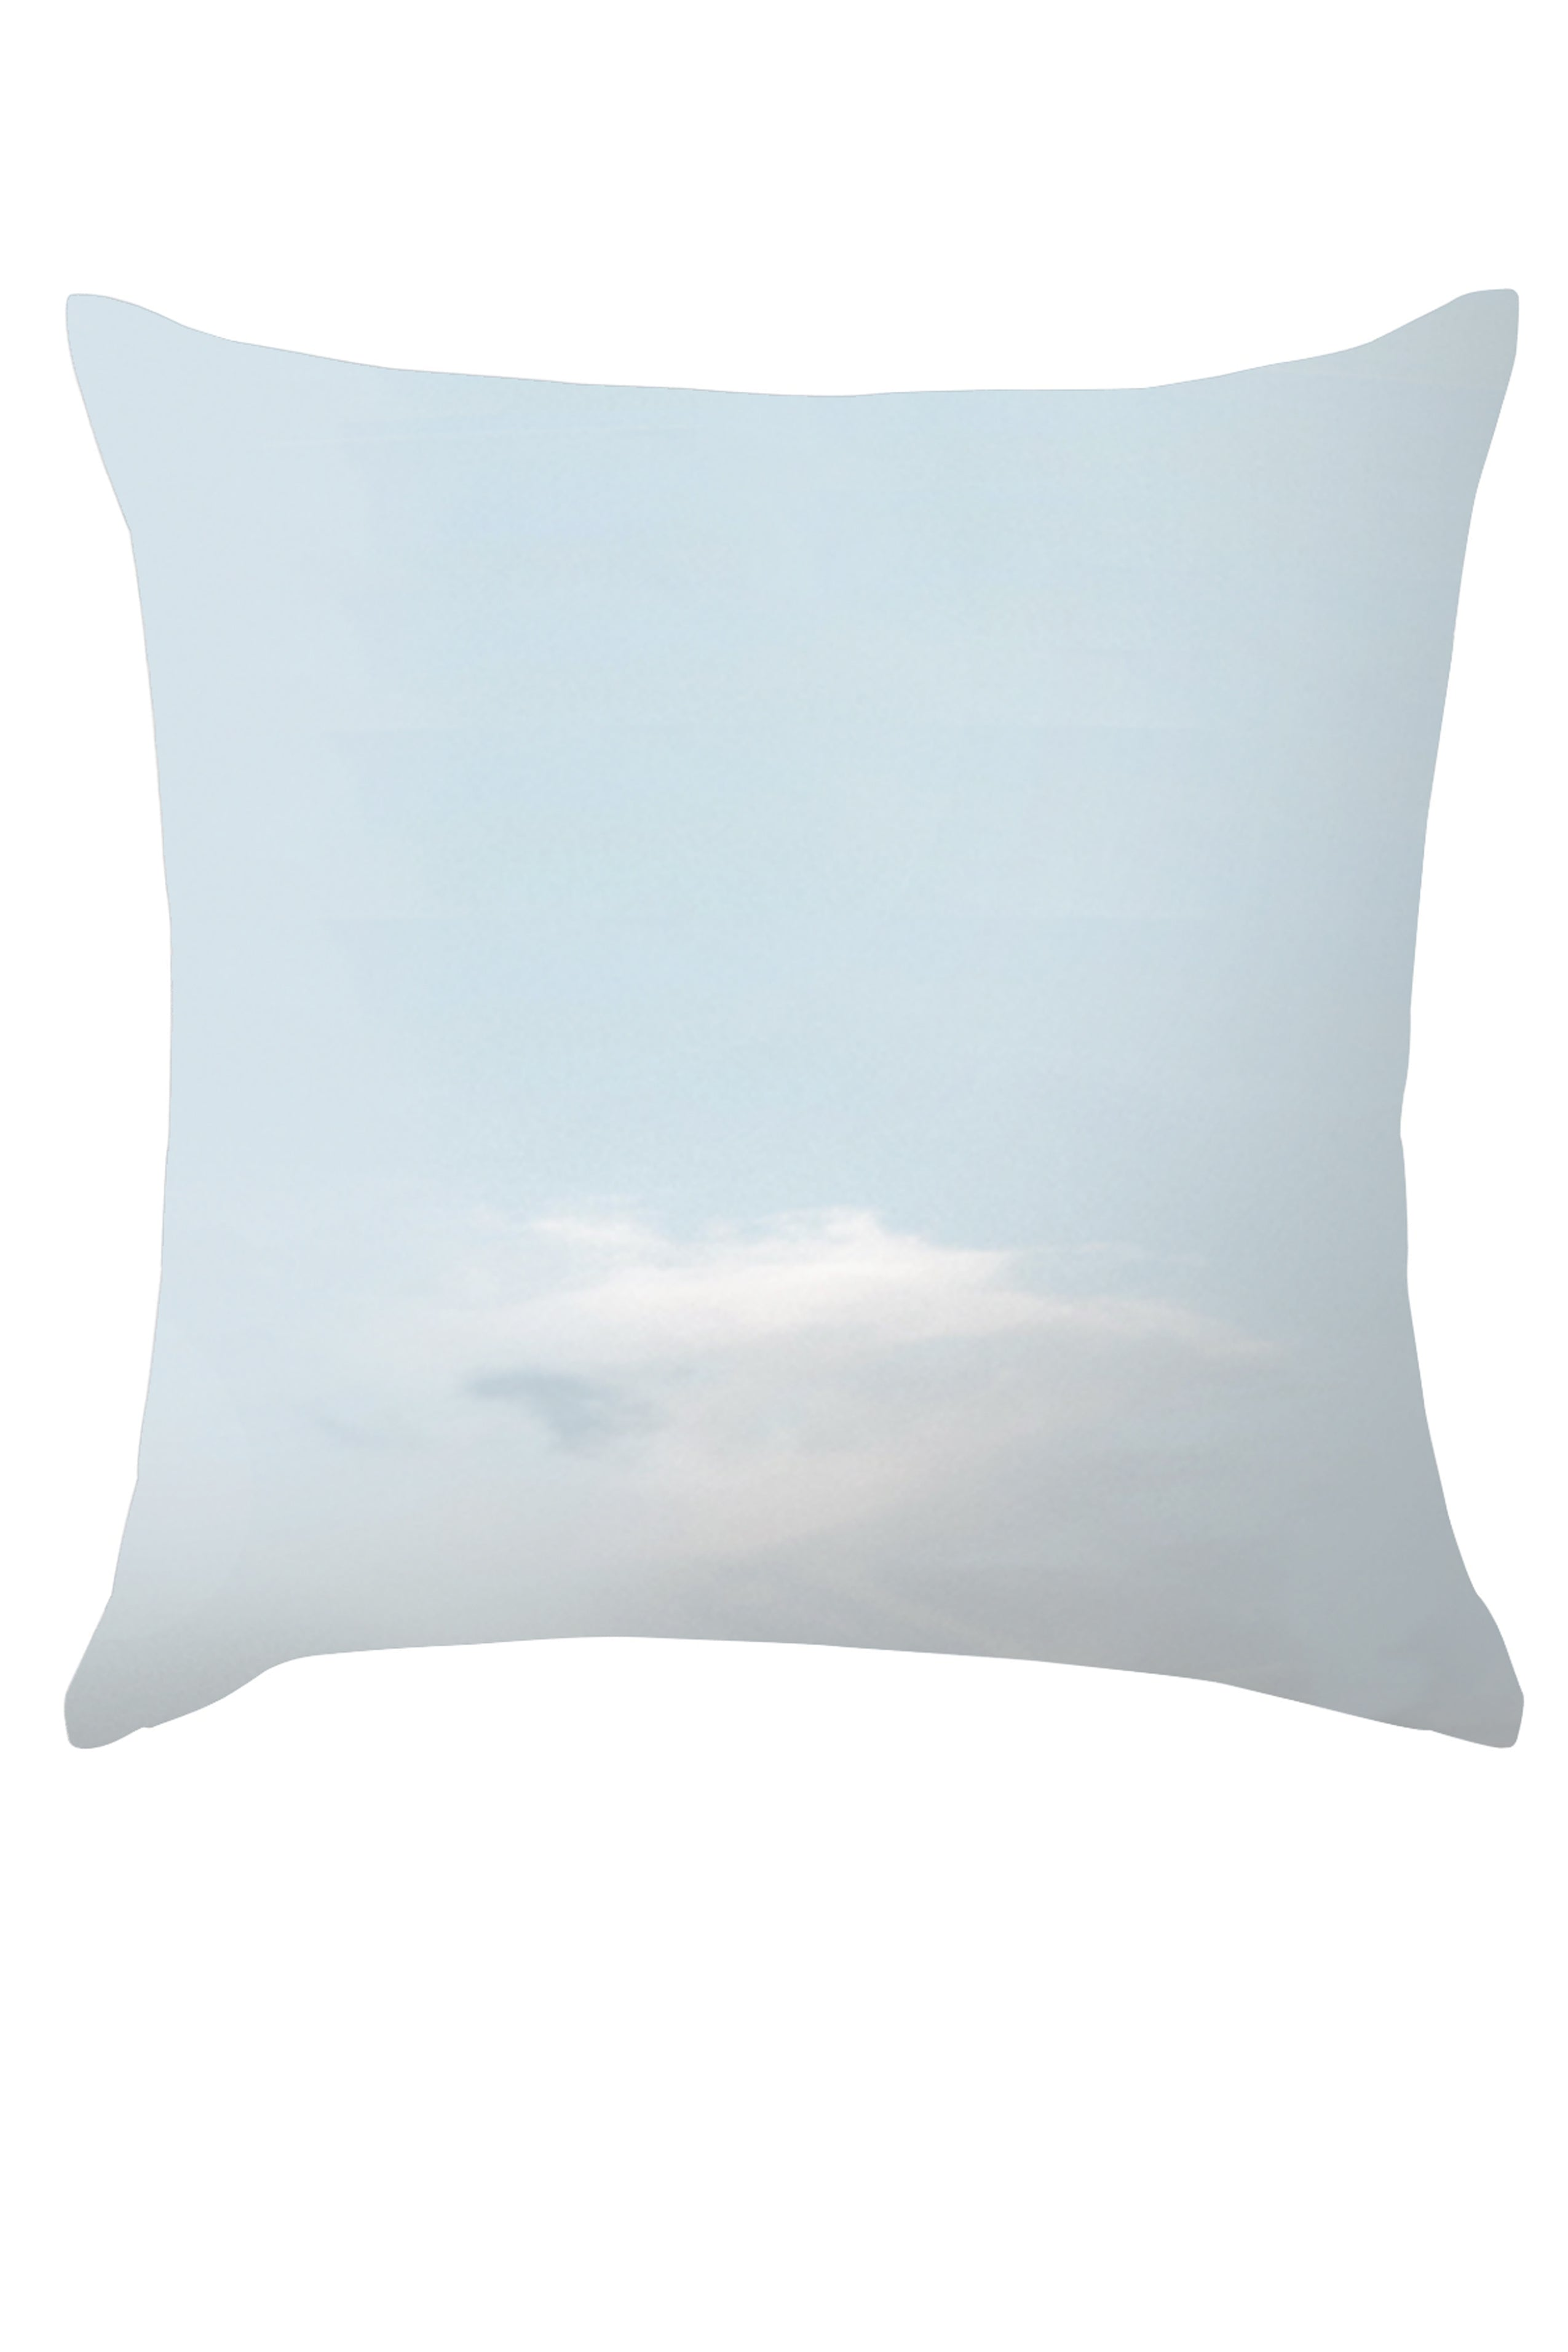 Large Pillow in Sky